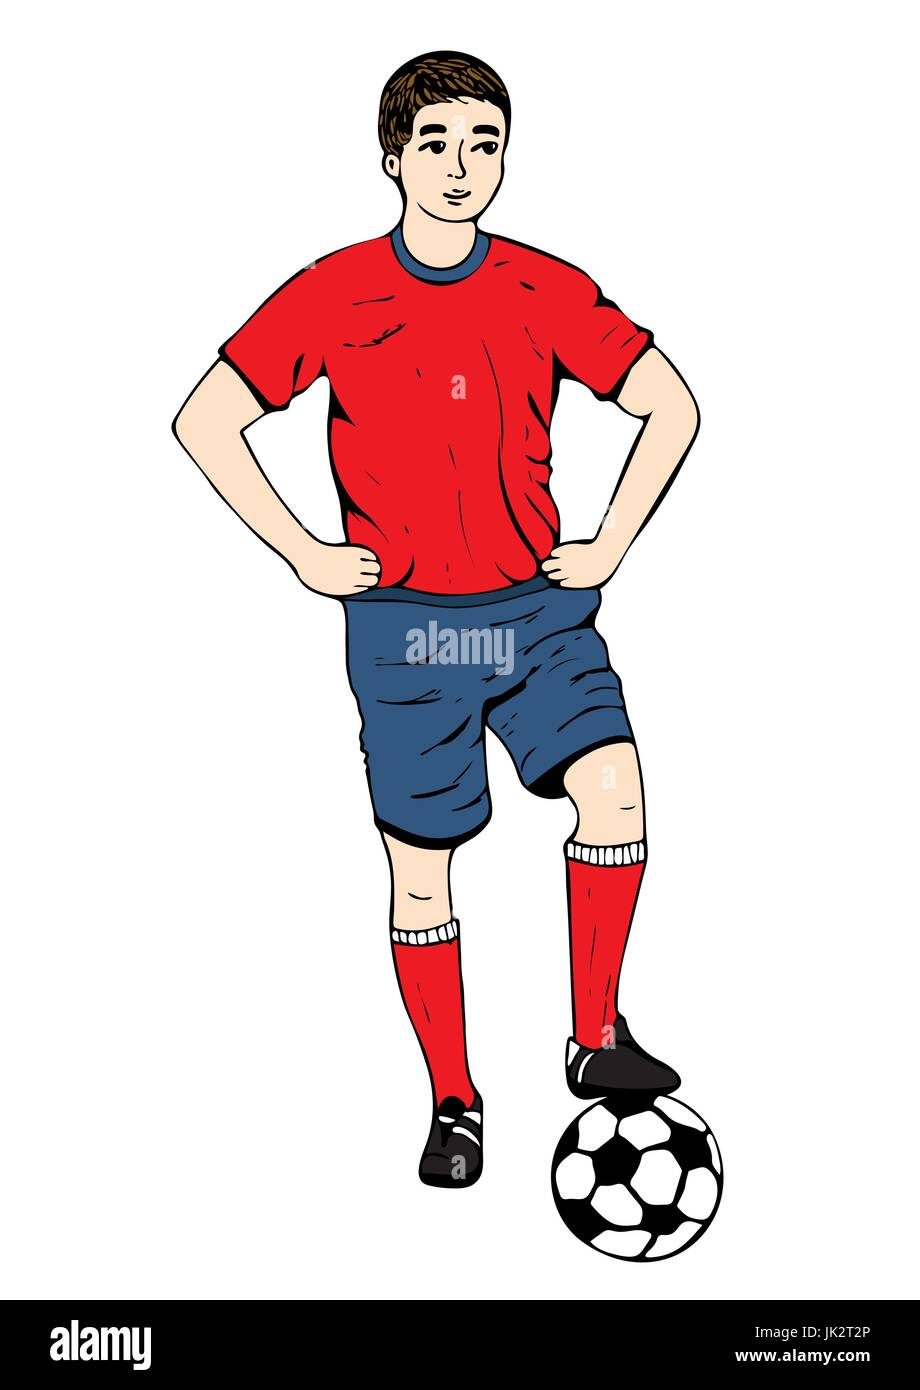 Footballer, vector hand drawing. Football player in a red blue uniform with a ball. Isolated on white background. Stock Vector